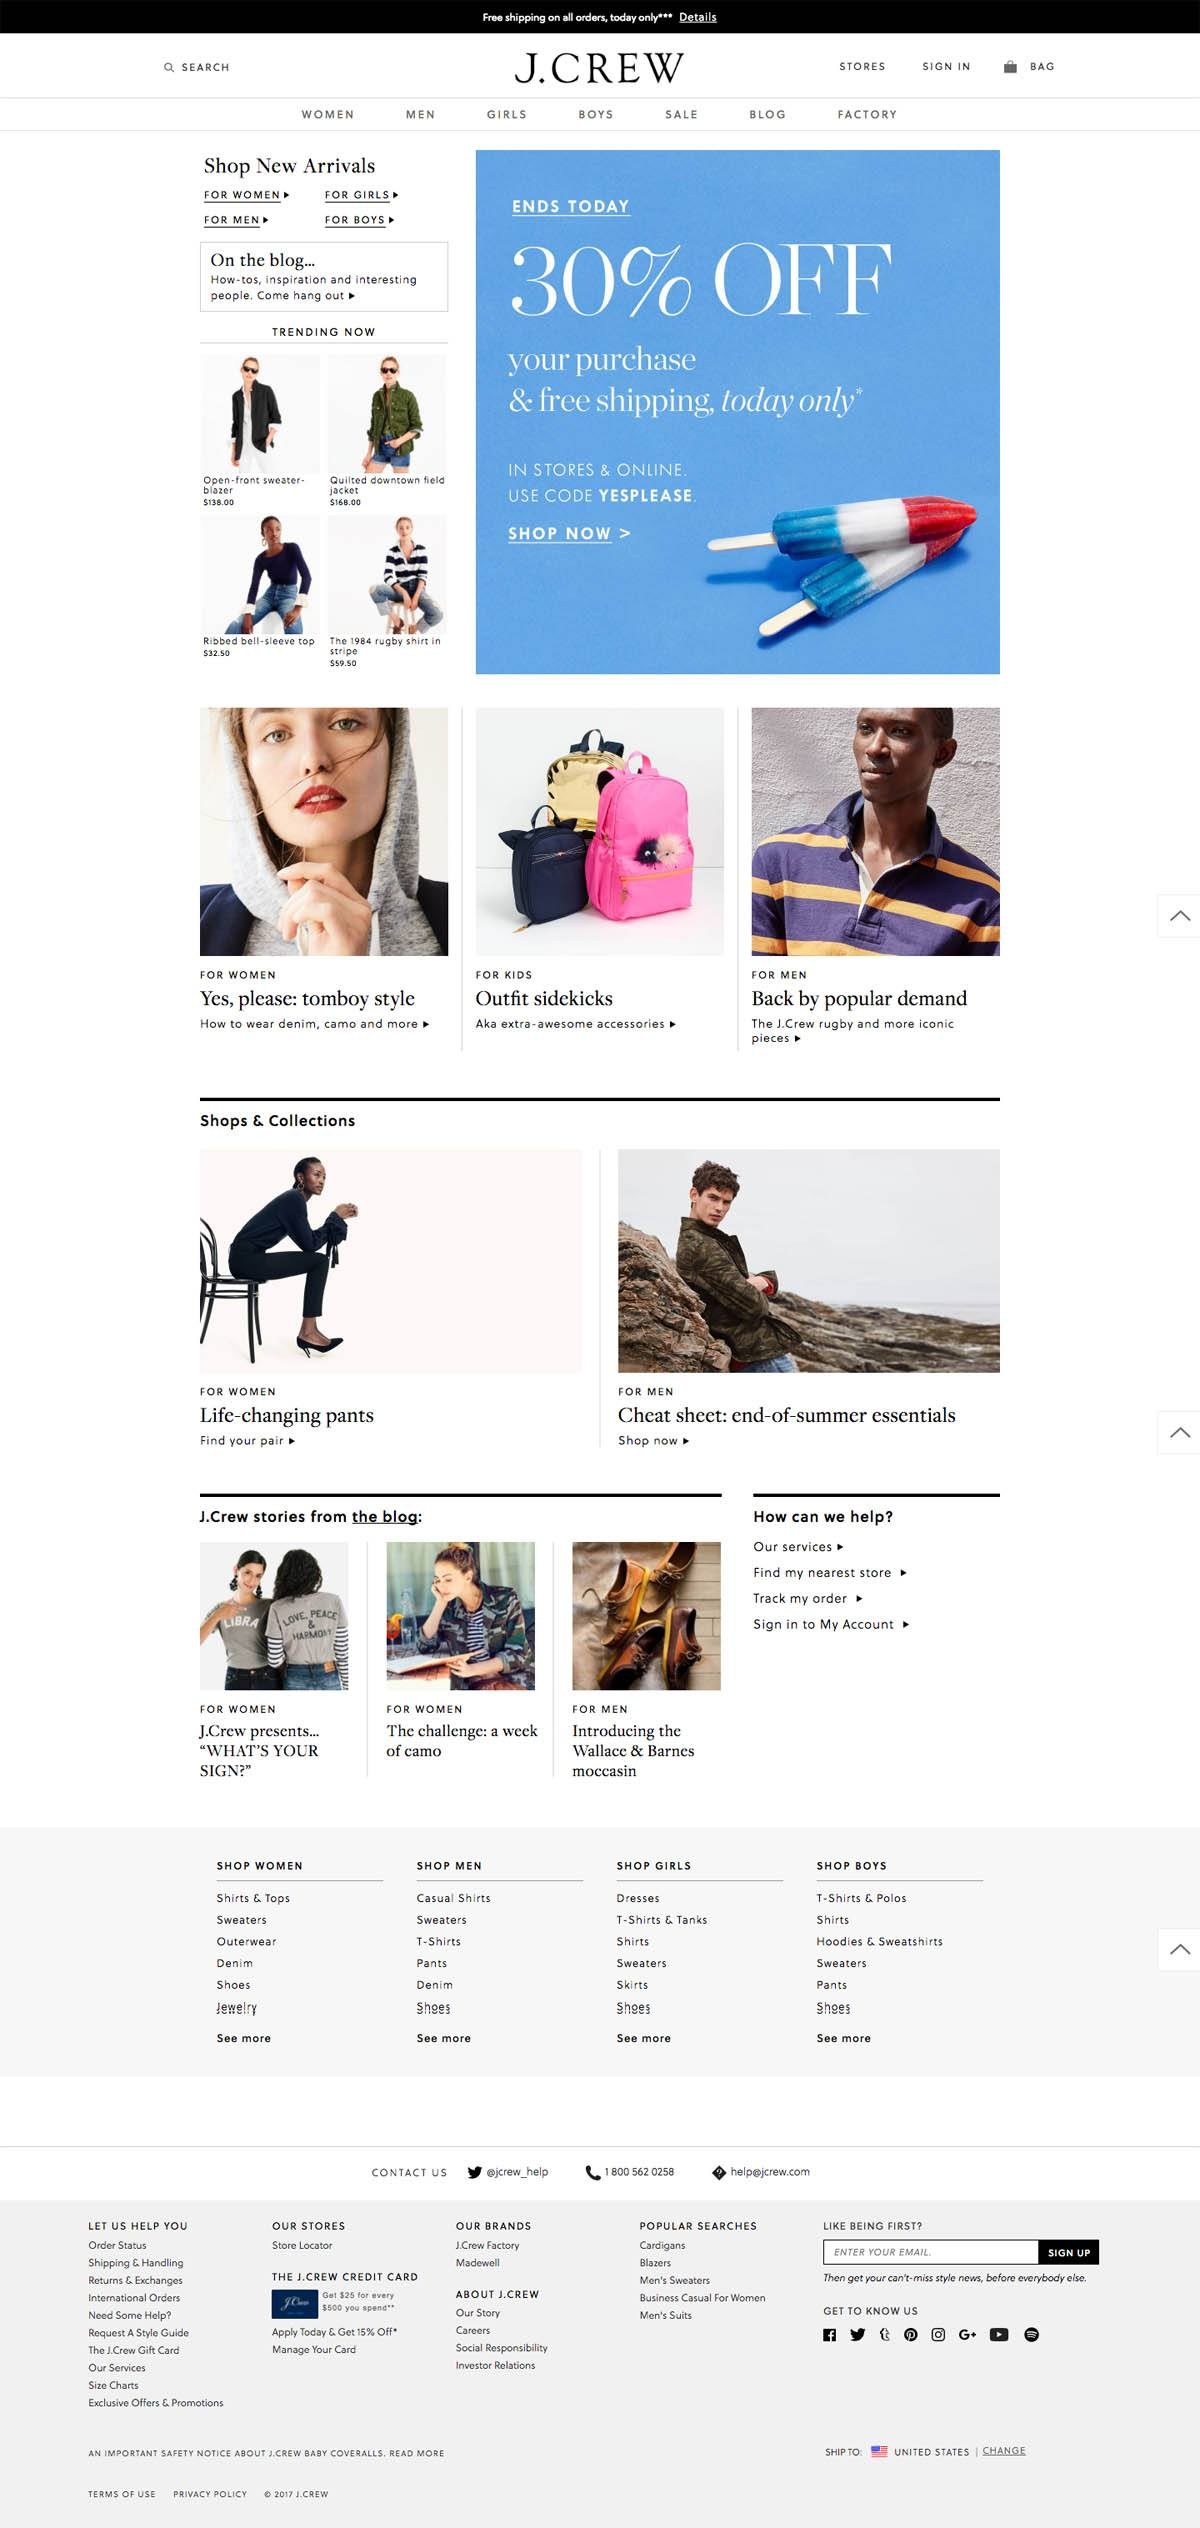 eCommerce website: J. Crew